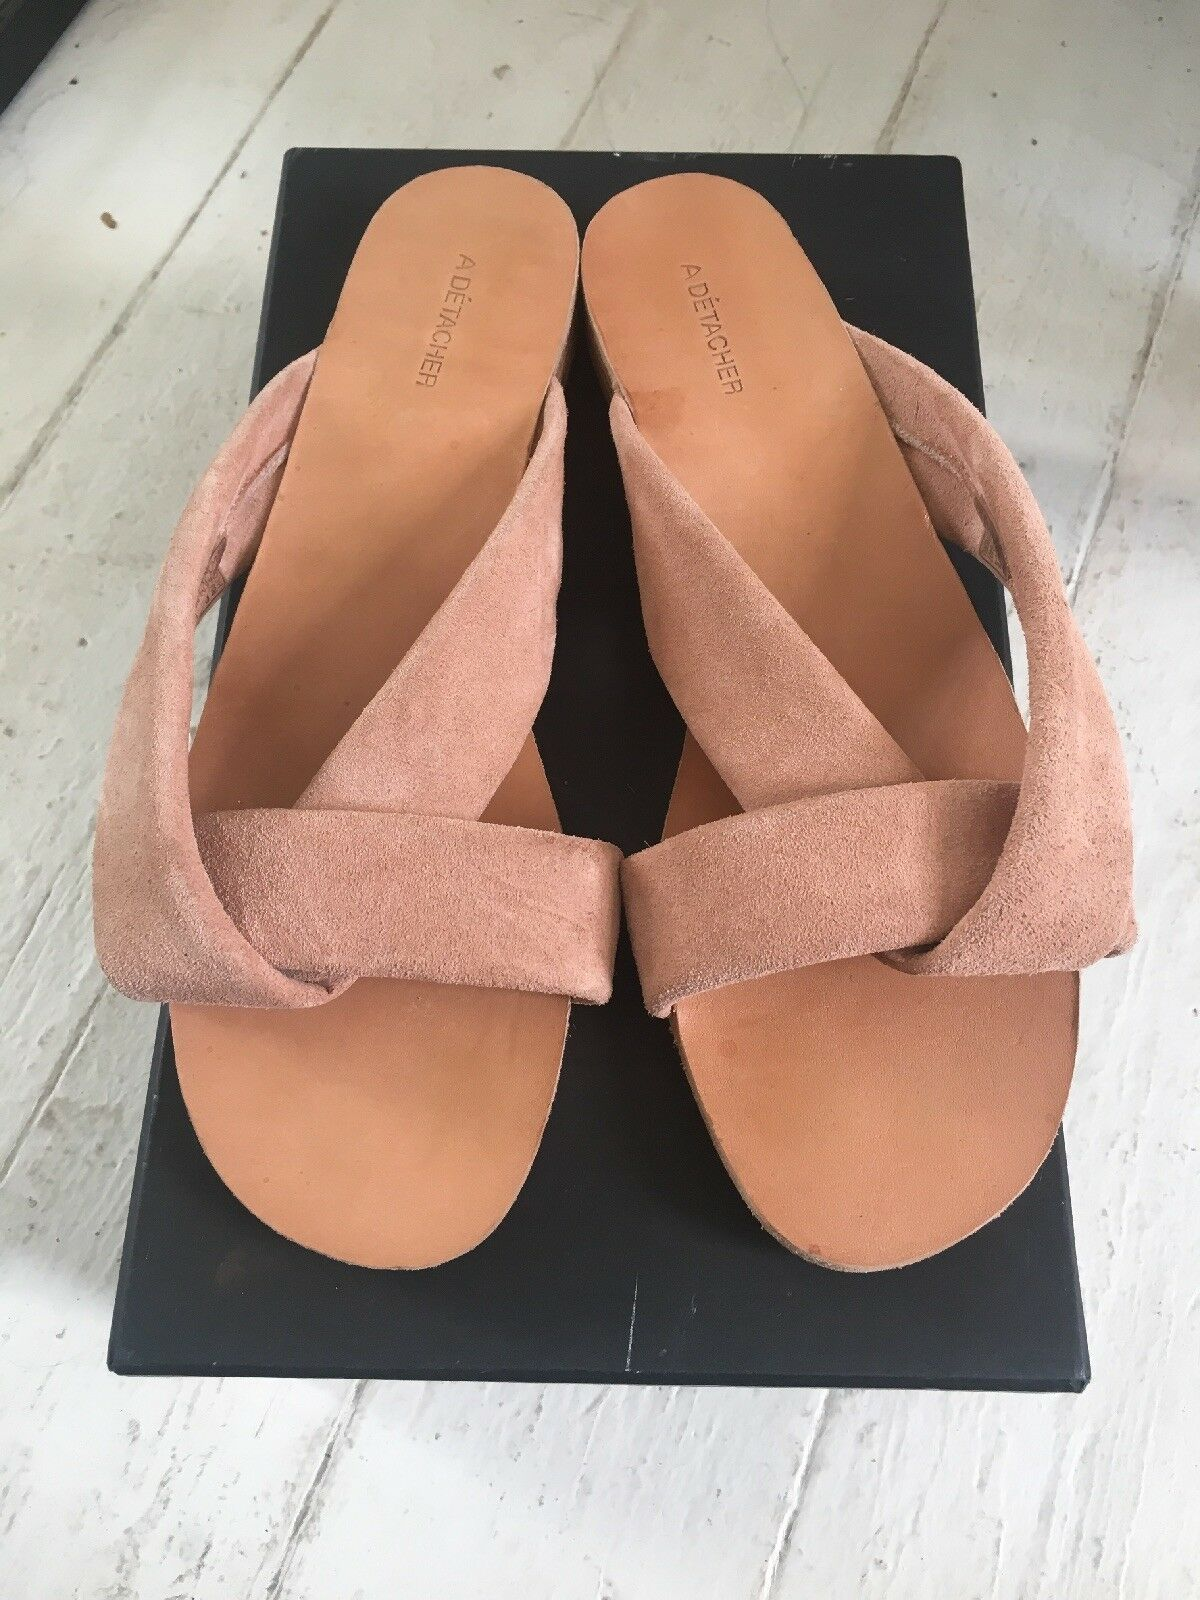 A Detacher Pipit Sandals Dimensione 9 Blush Blush Blush suede slides rachel comey ulla johnson ff6da1